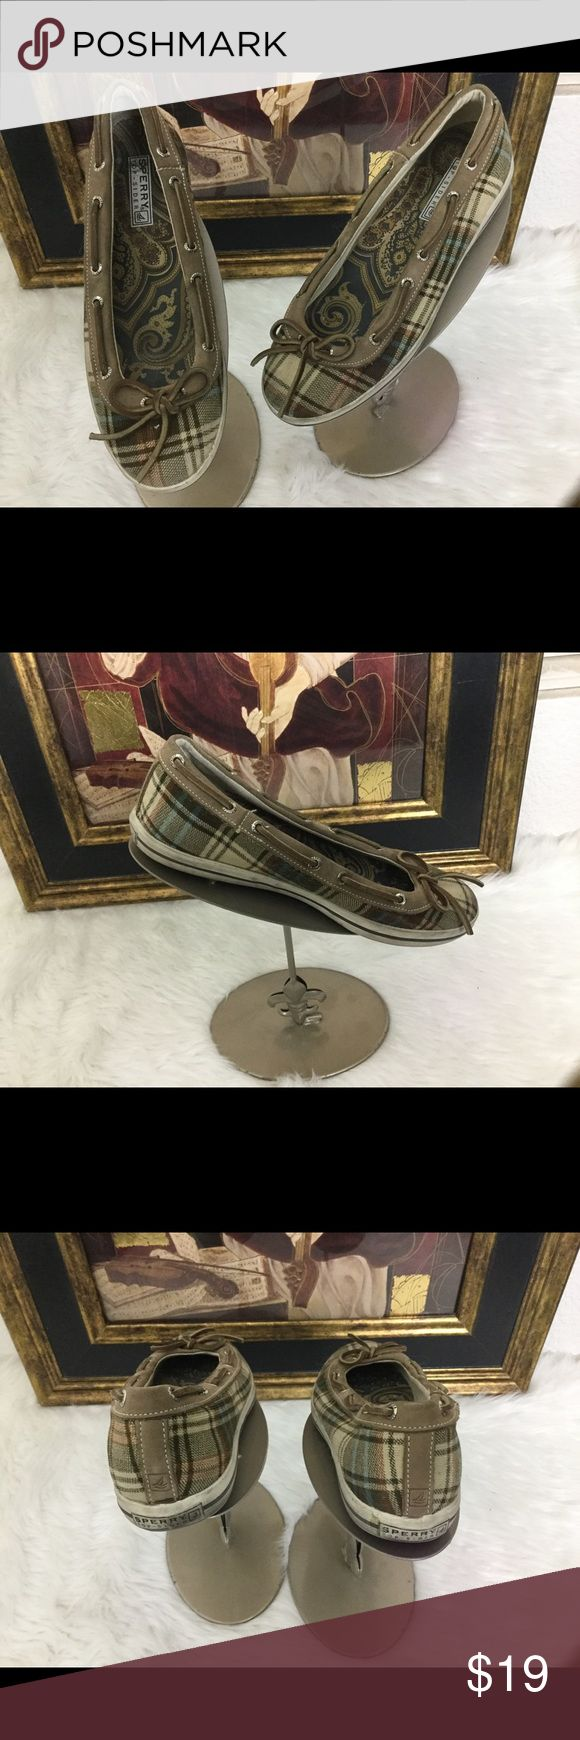 Sperry Top Sider Shoes.  Sz 8M Check out these Sperry Top Sider shoes.  In good condition.  Love the plaid design. Sperry Top-Sider Shoes Flats & Loafers